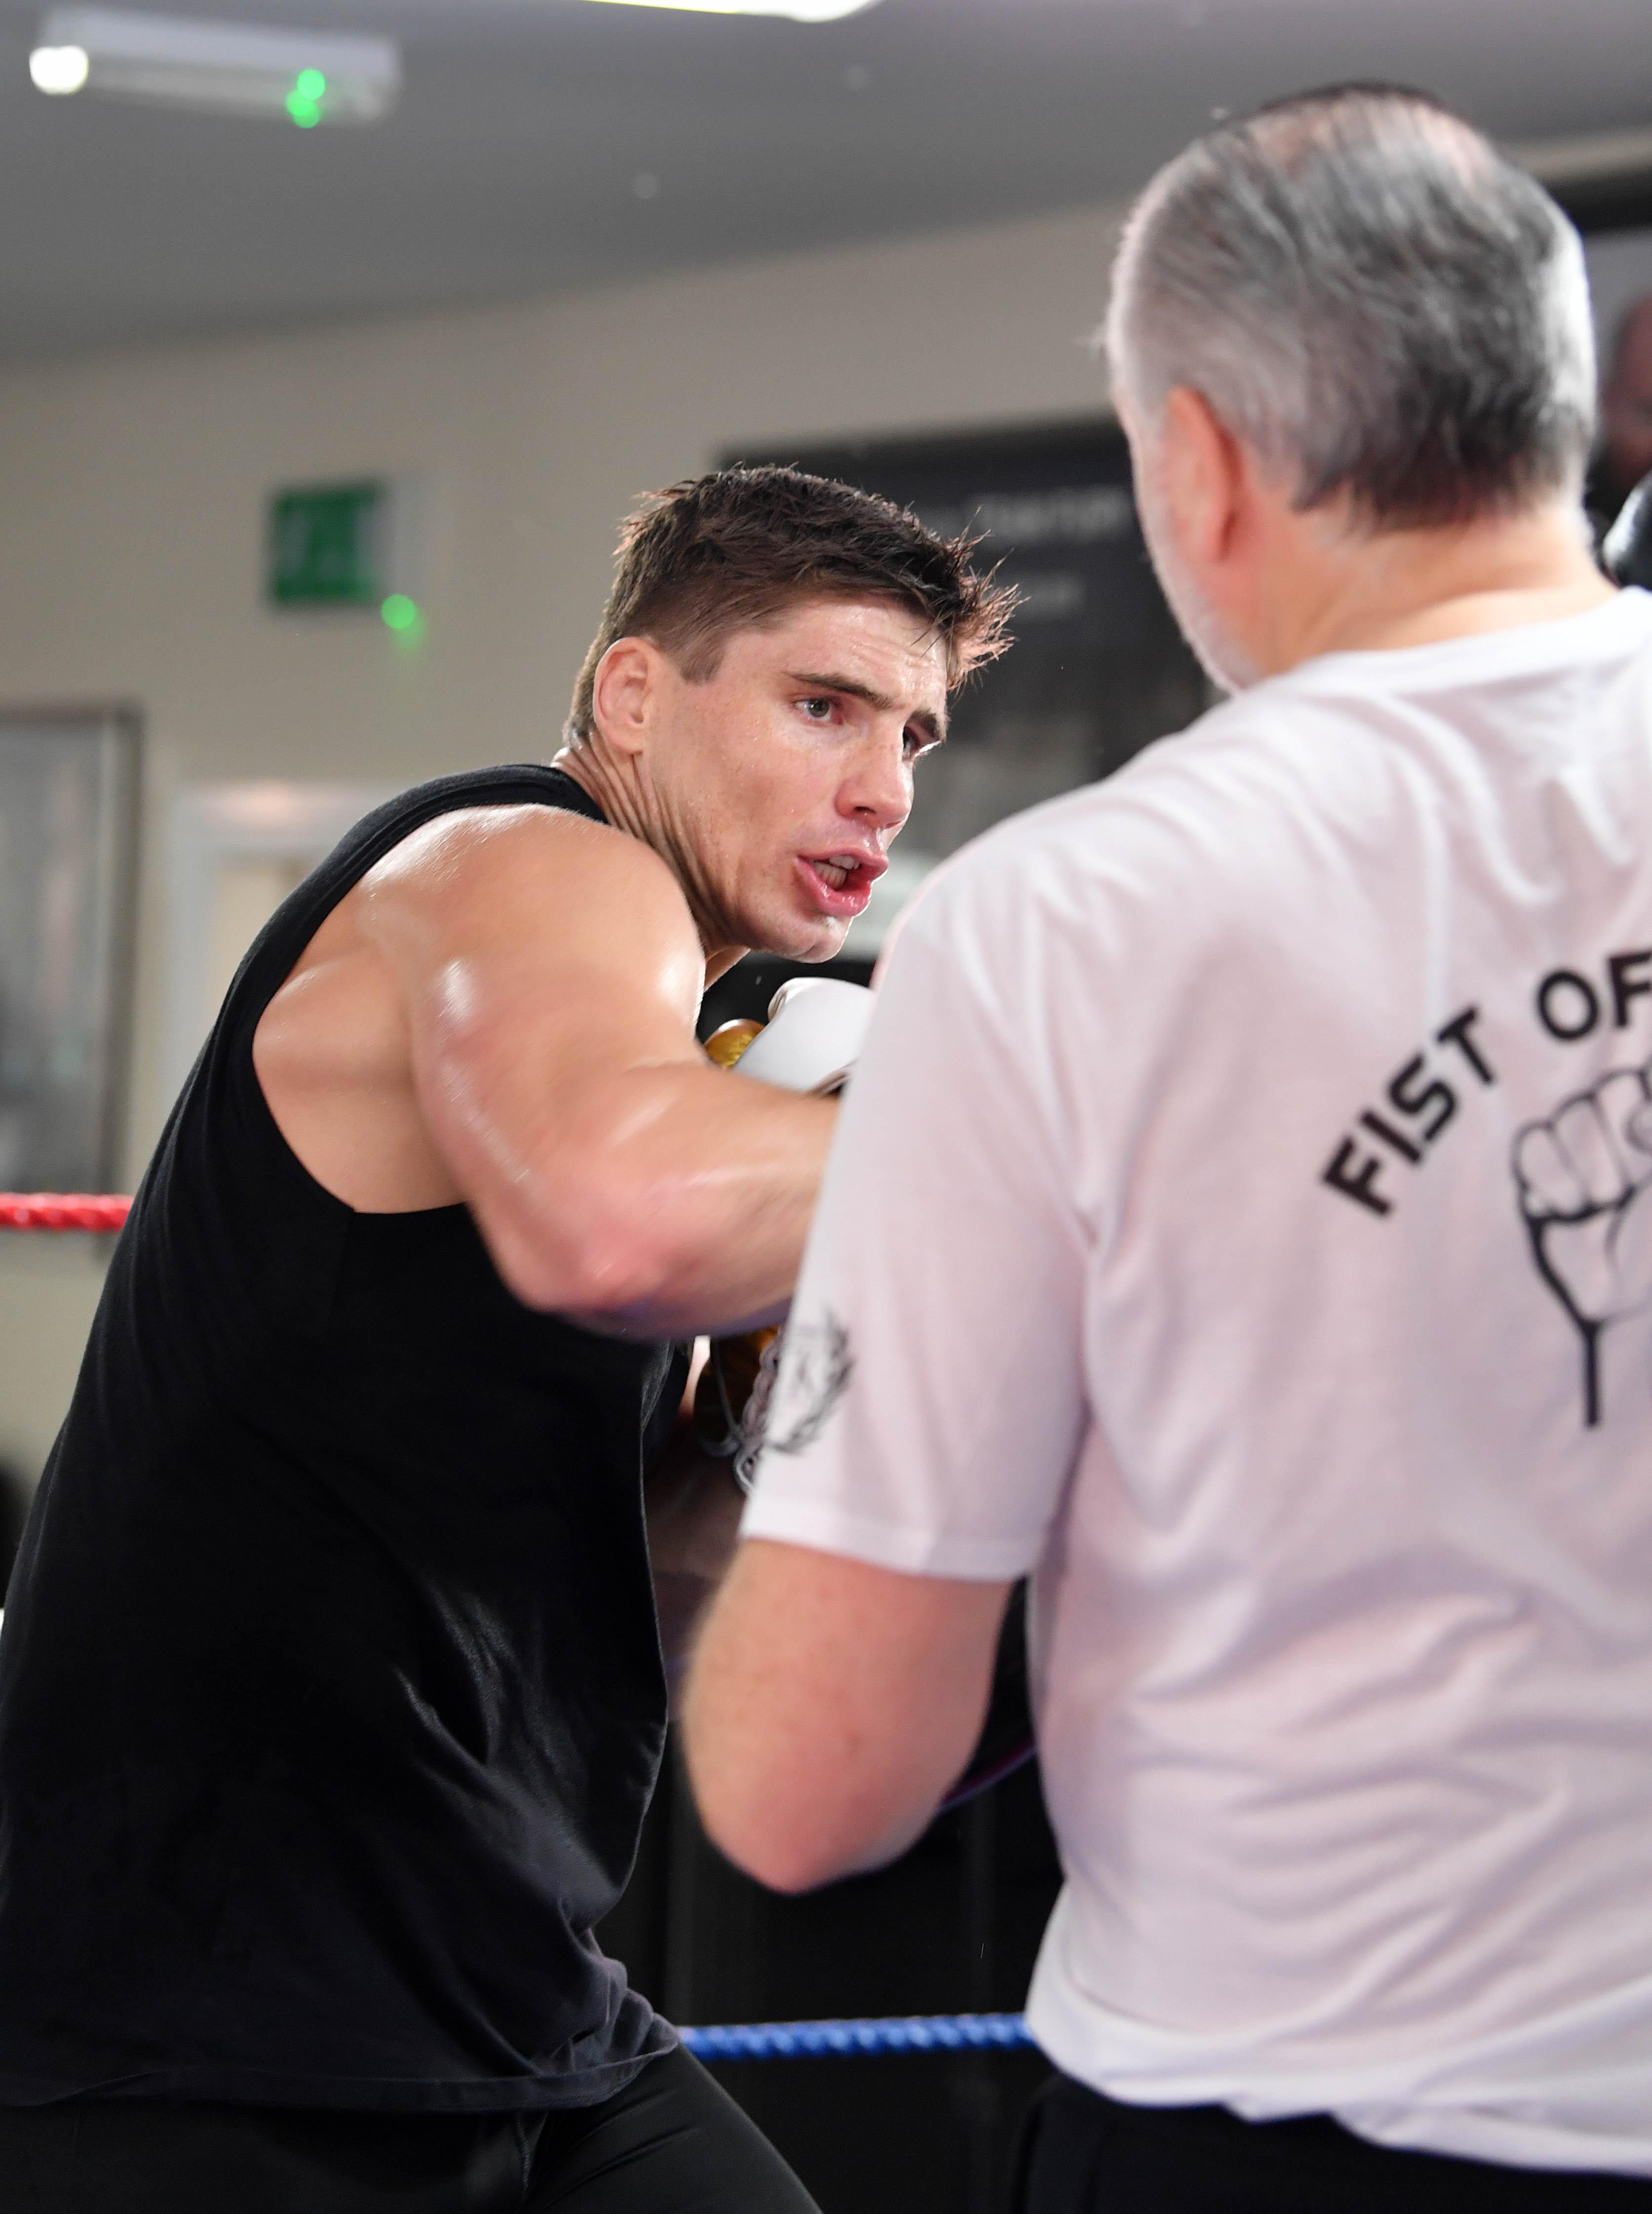 Rico Verhoeven is the biggest star in kickboxing - in every sense